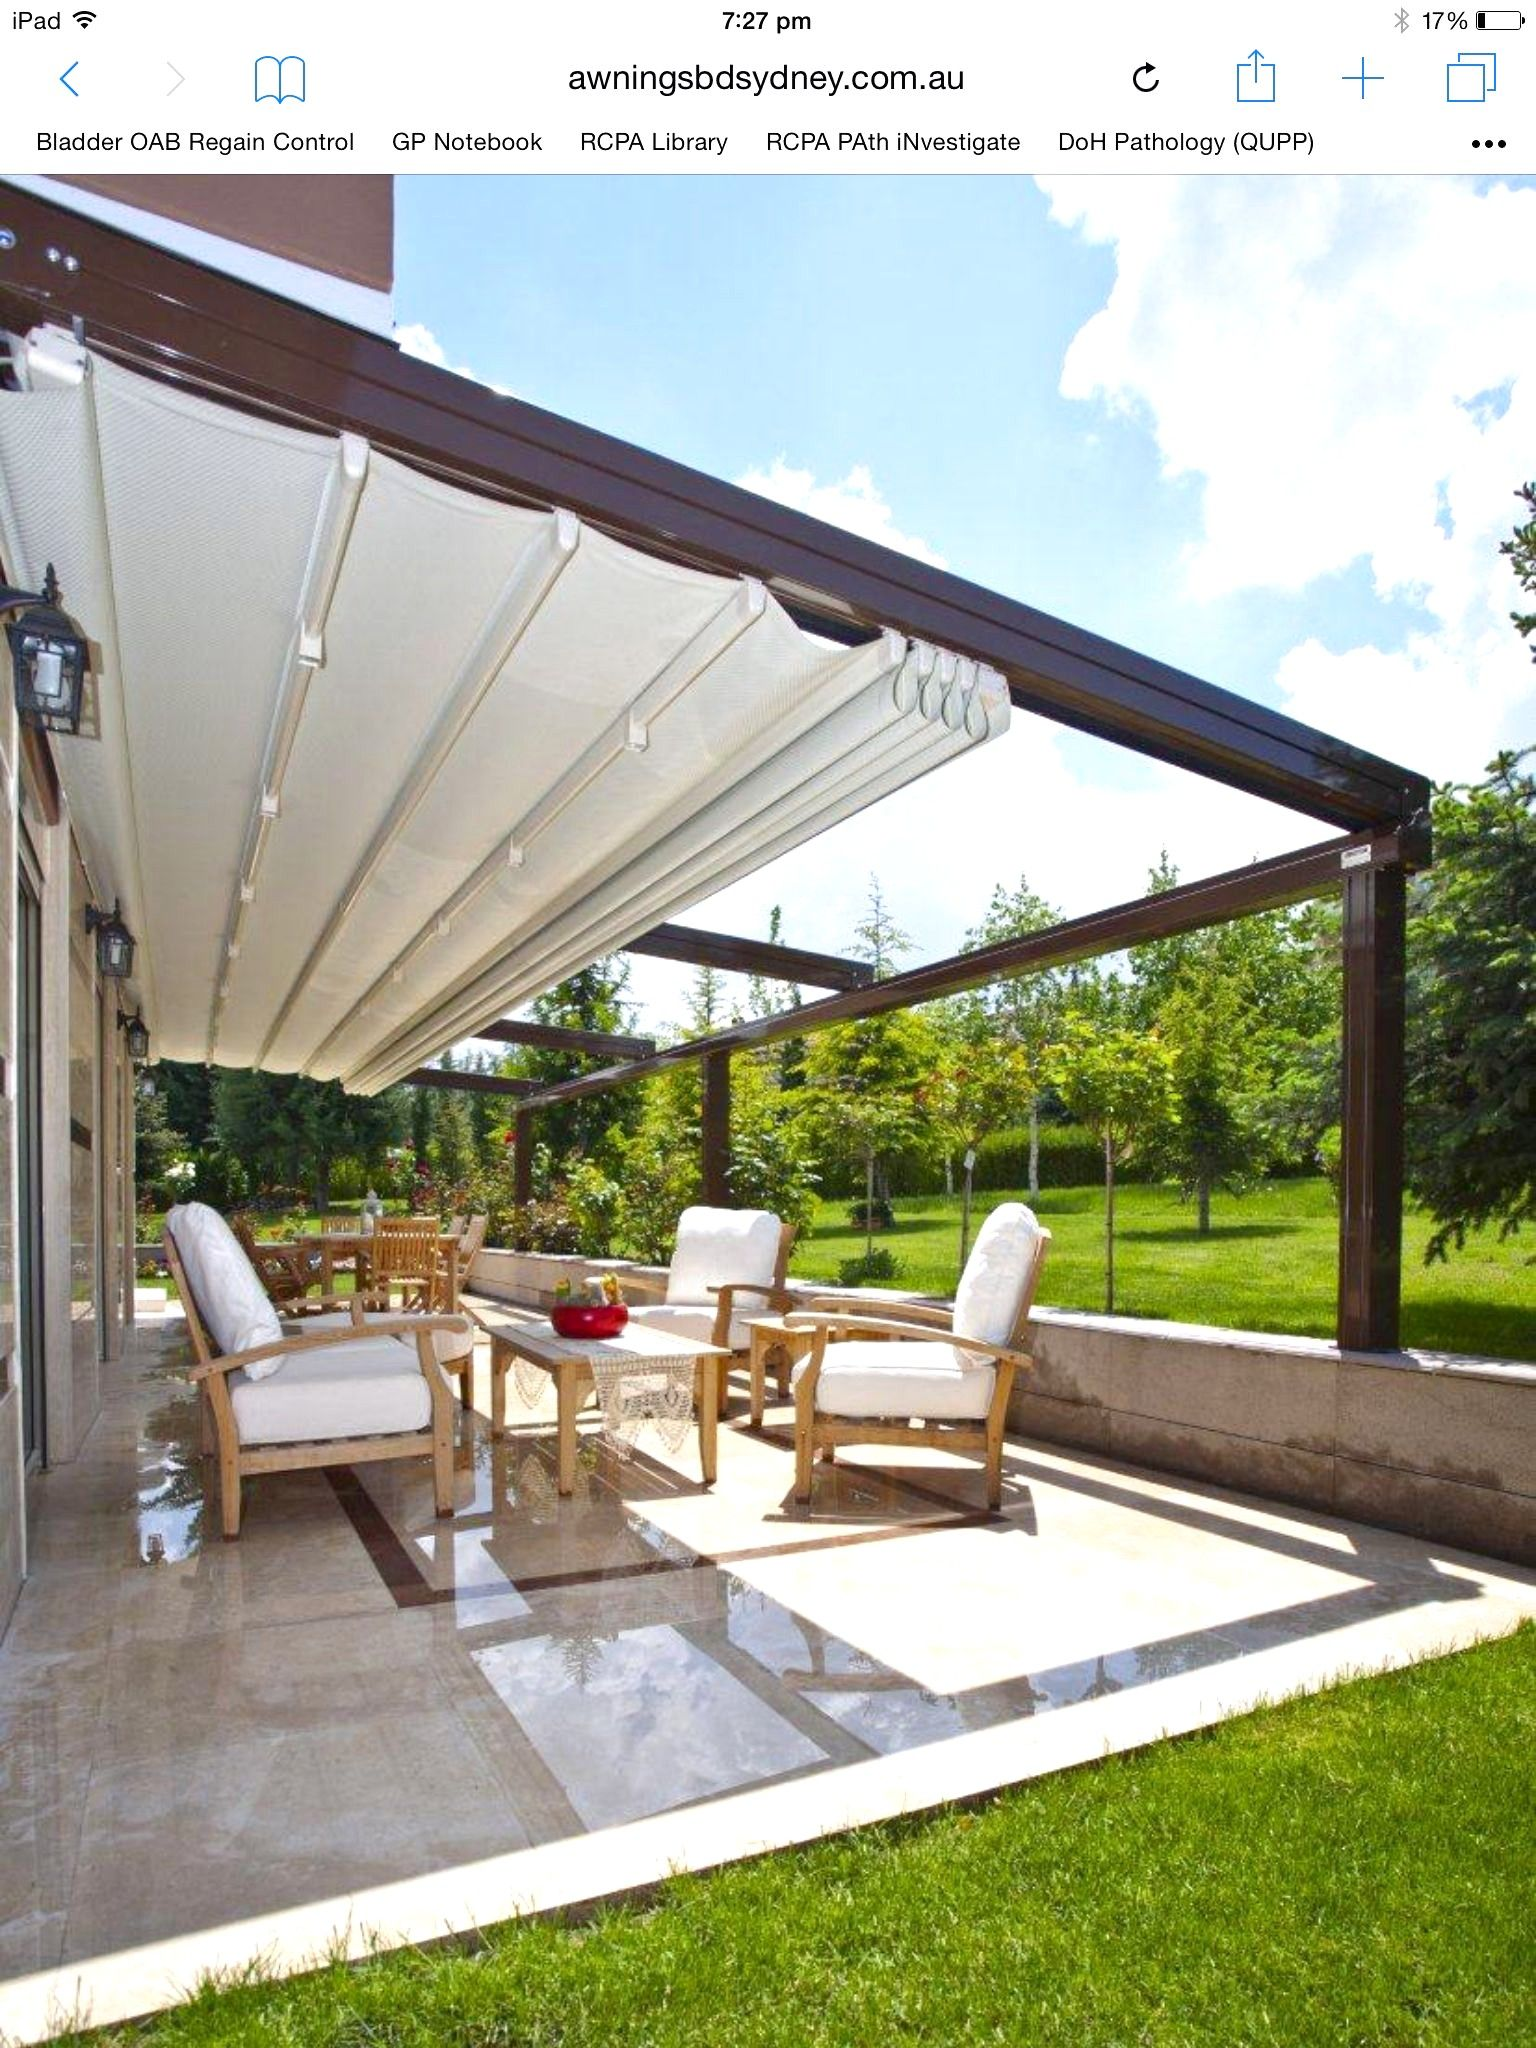 If You Have The Space In Your Yard Check Out The Outdoor Kitchen Ideas Total With Bars Seating Areas Storage Outdoor Pergola Backyard Pergola Pergola Patio